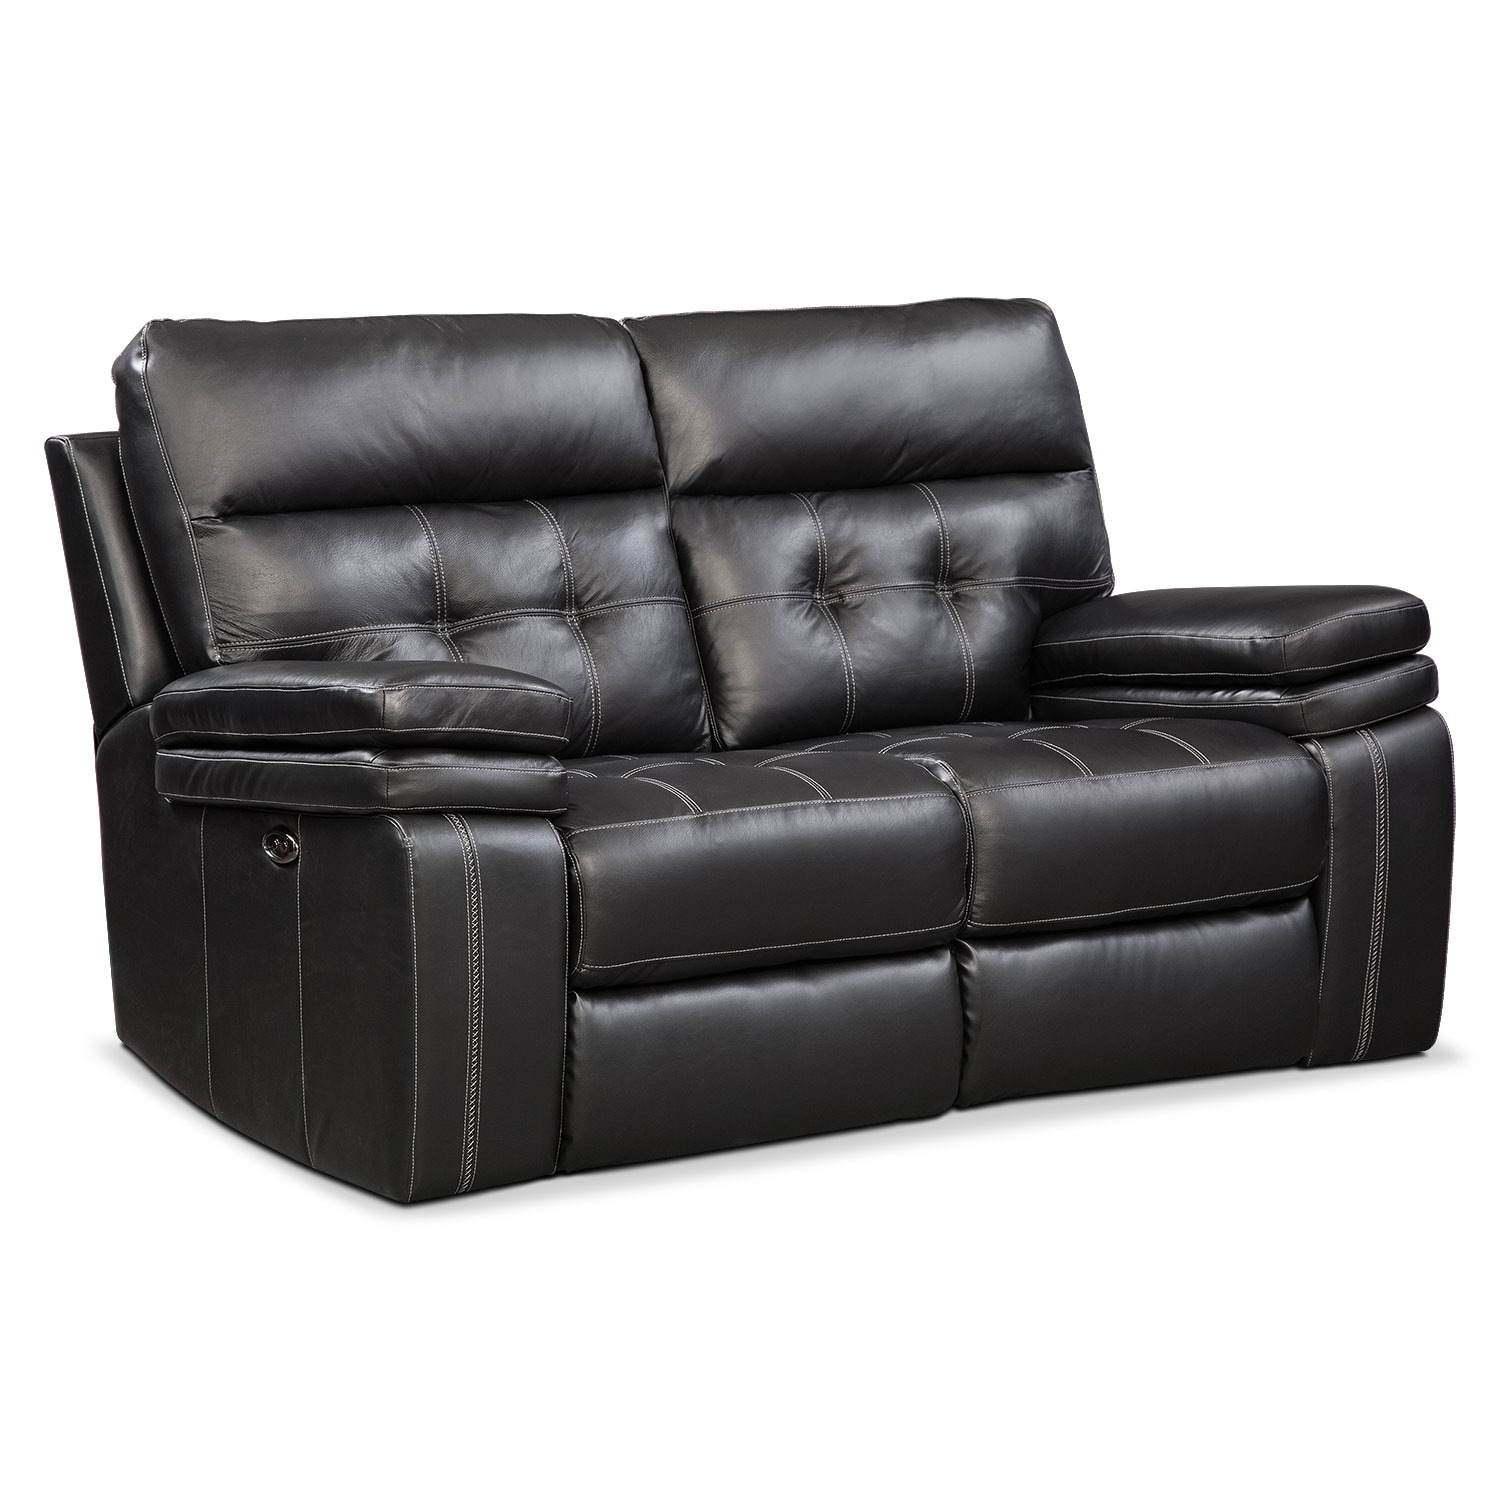 Furniture stores fort wayne indiana - Brisco Power Reclining Loveseat Black